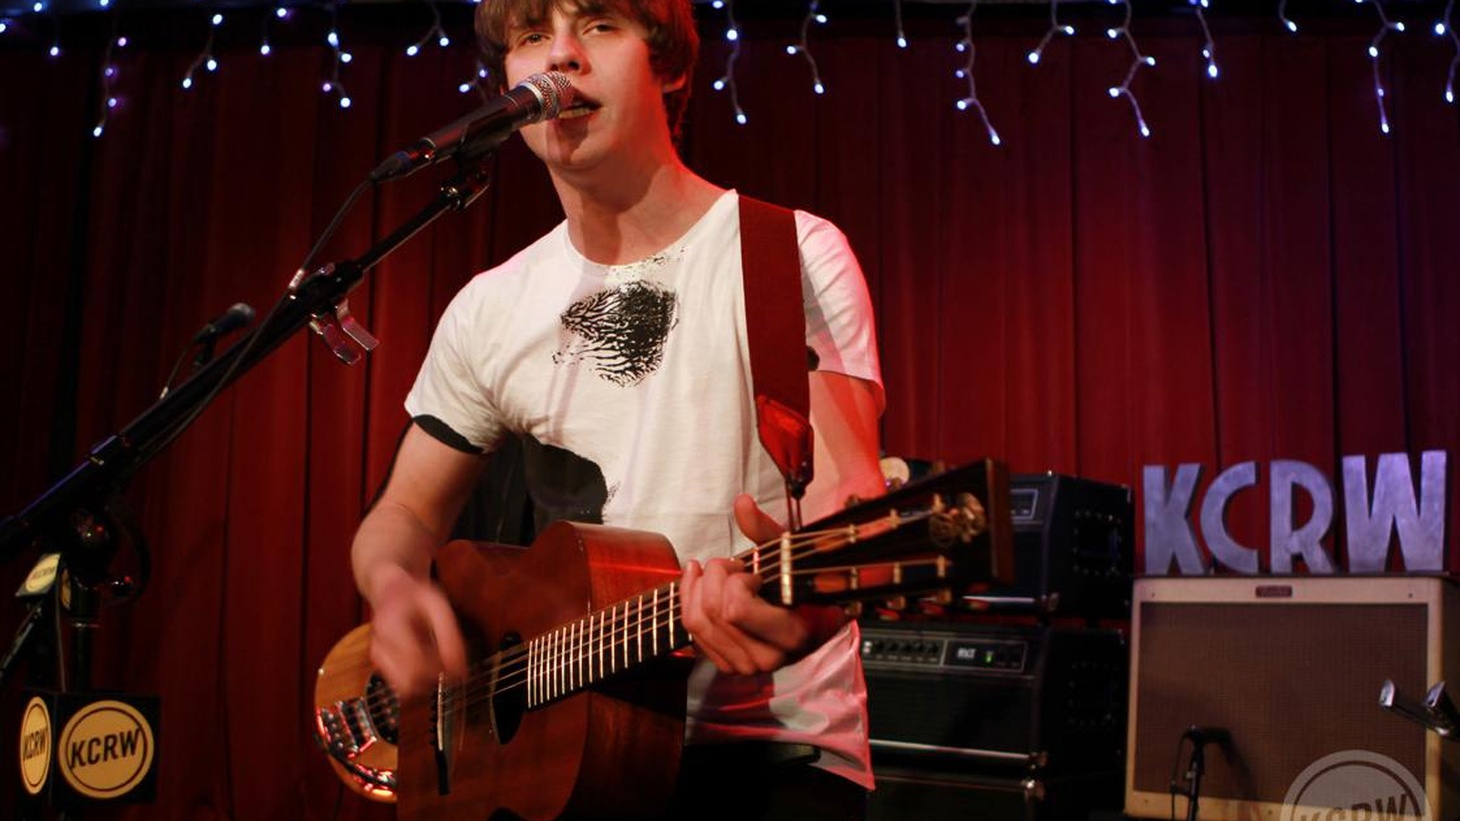 Young UK folk troubadour Jake Bugg recorded his album Shangri Lahere in LA and returned to perform a blistering set for KCRW as part of our Apogee Sessions series.